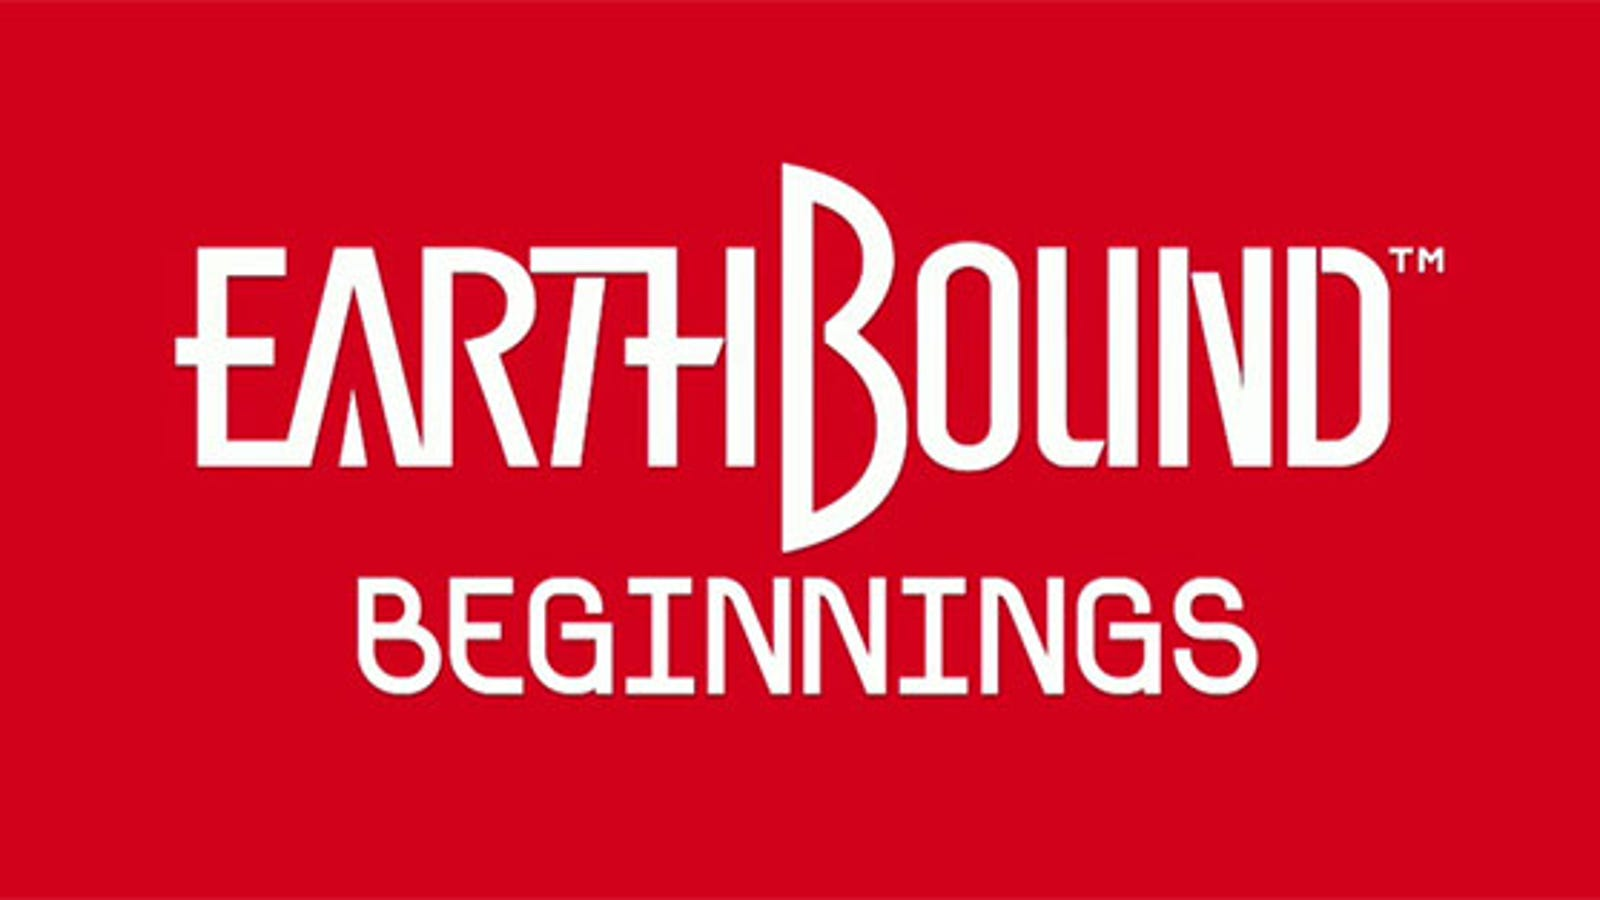 Mother Coming To Wii U As Earthbound Beginnings